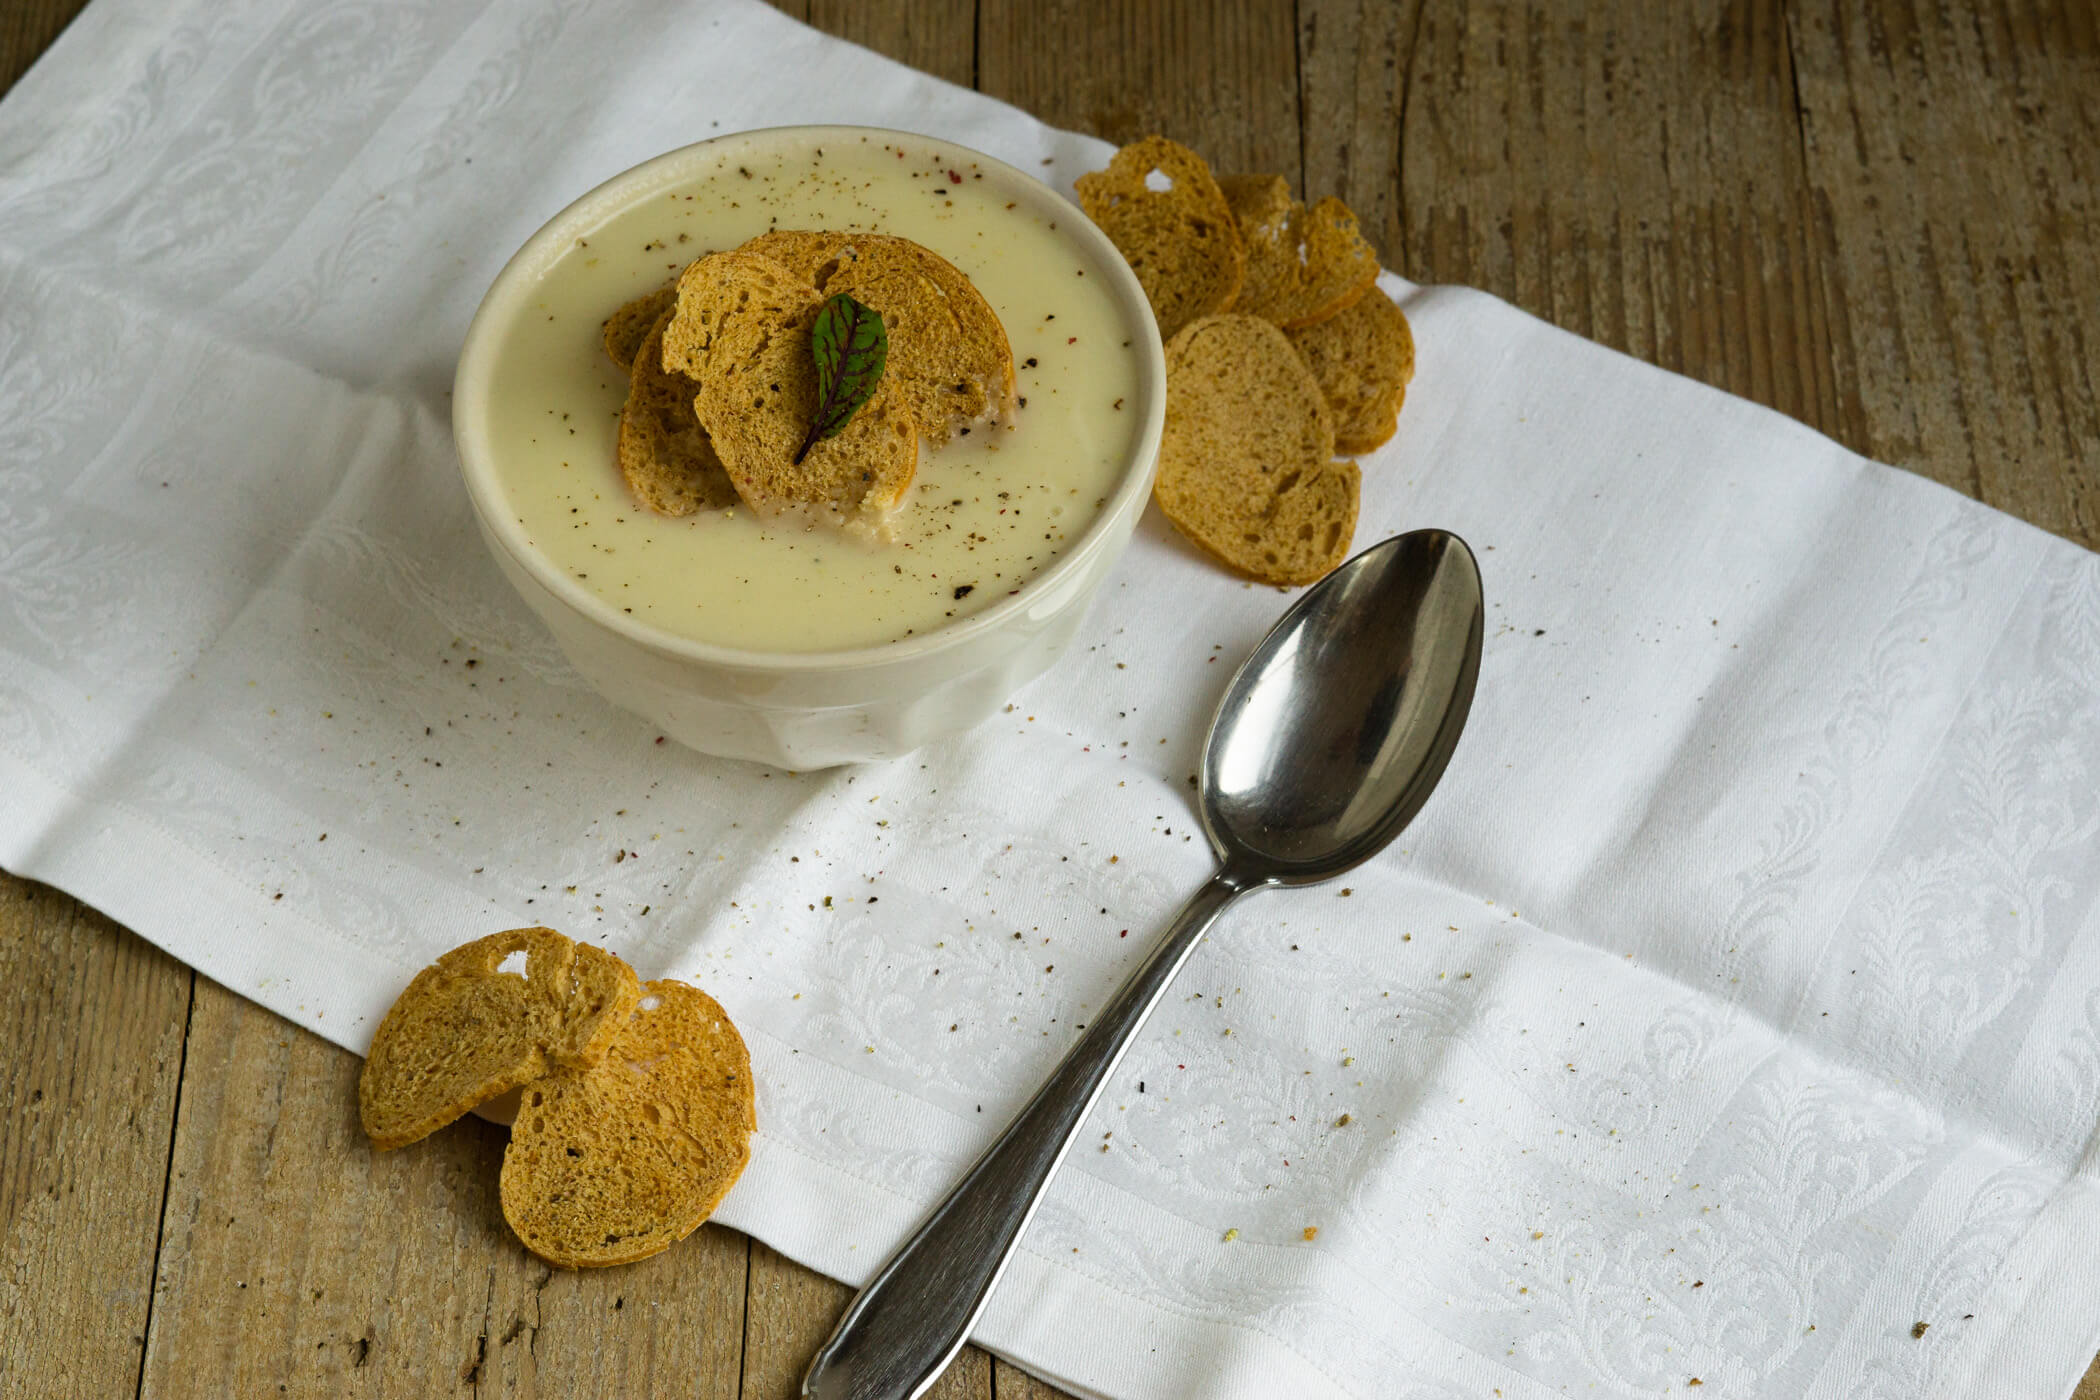 Read more about the article Pastinakensuppe mit Brotchips